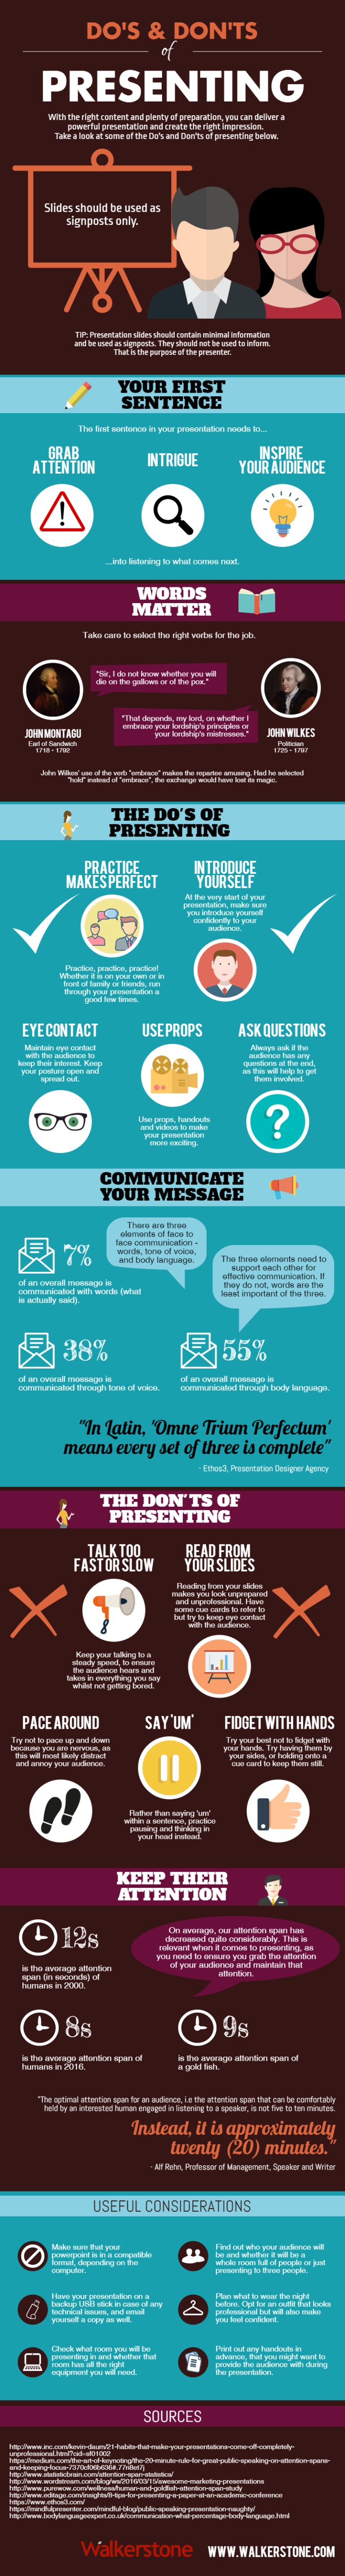 Effective presentation skills infographic